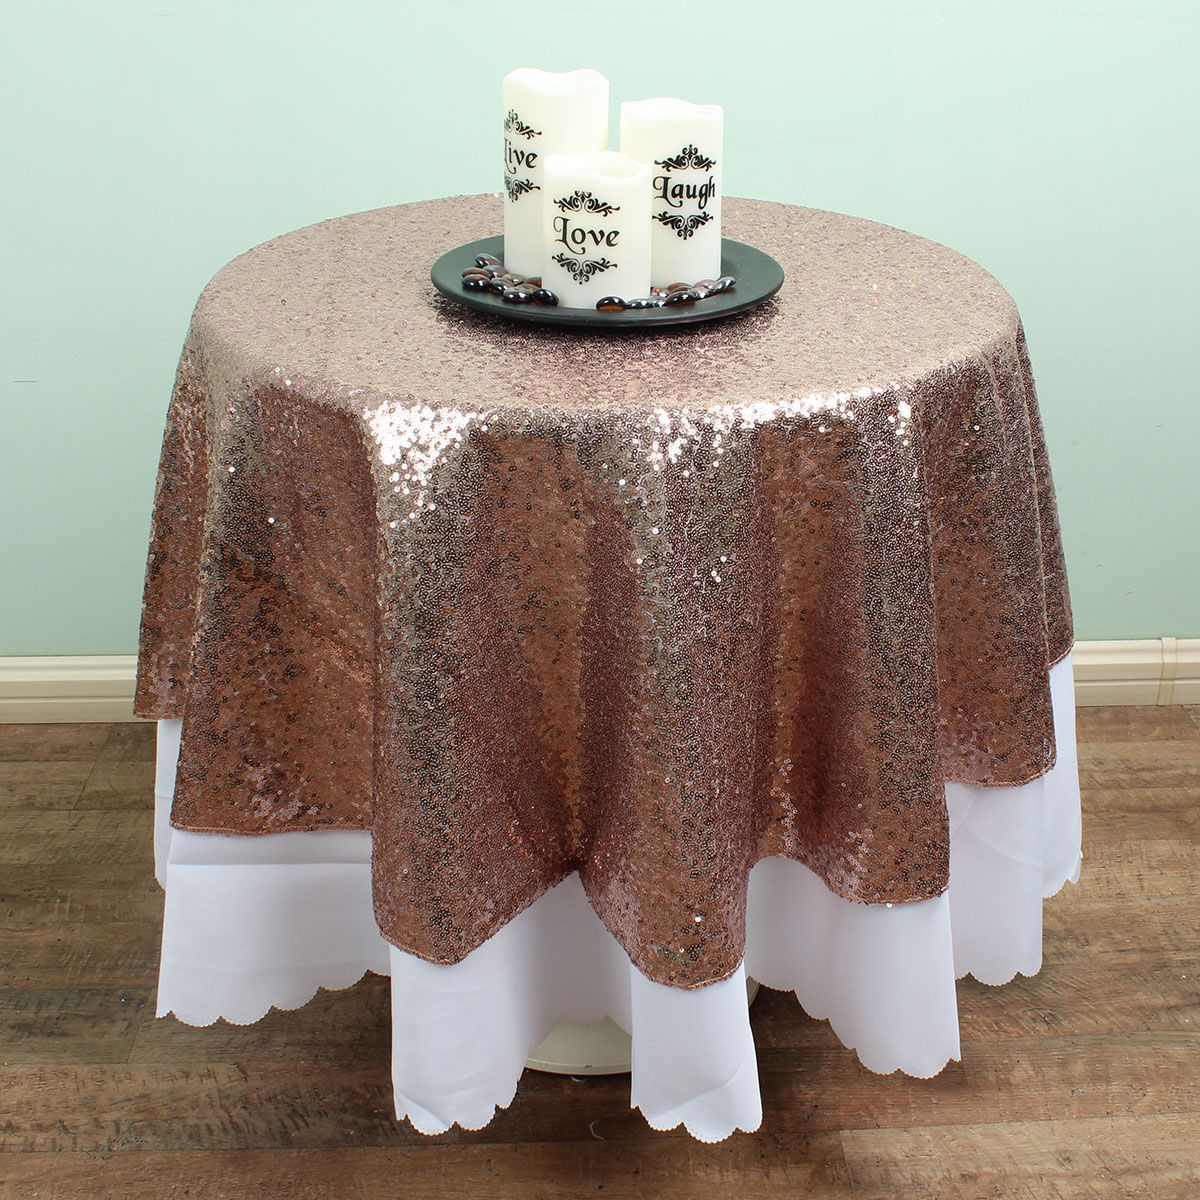 48 Inch Gold / Silver / Champagne Round Sequin TableCloths Overlay Glitter  Table Covers Sparkly Bling Wedding Party Decoration In Tablecloths From  Home ...